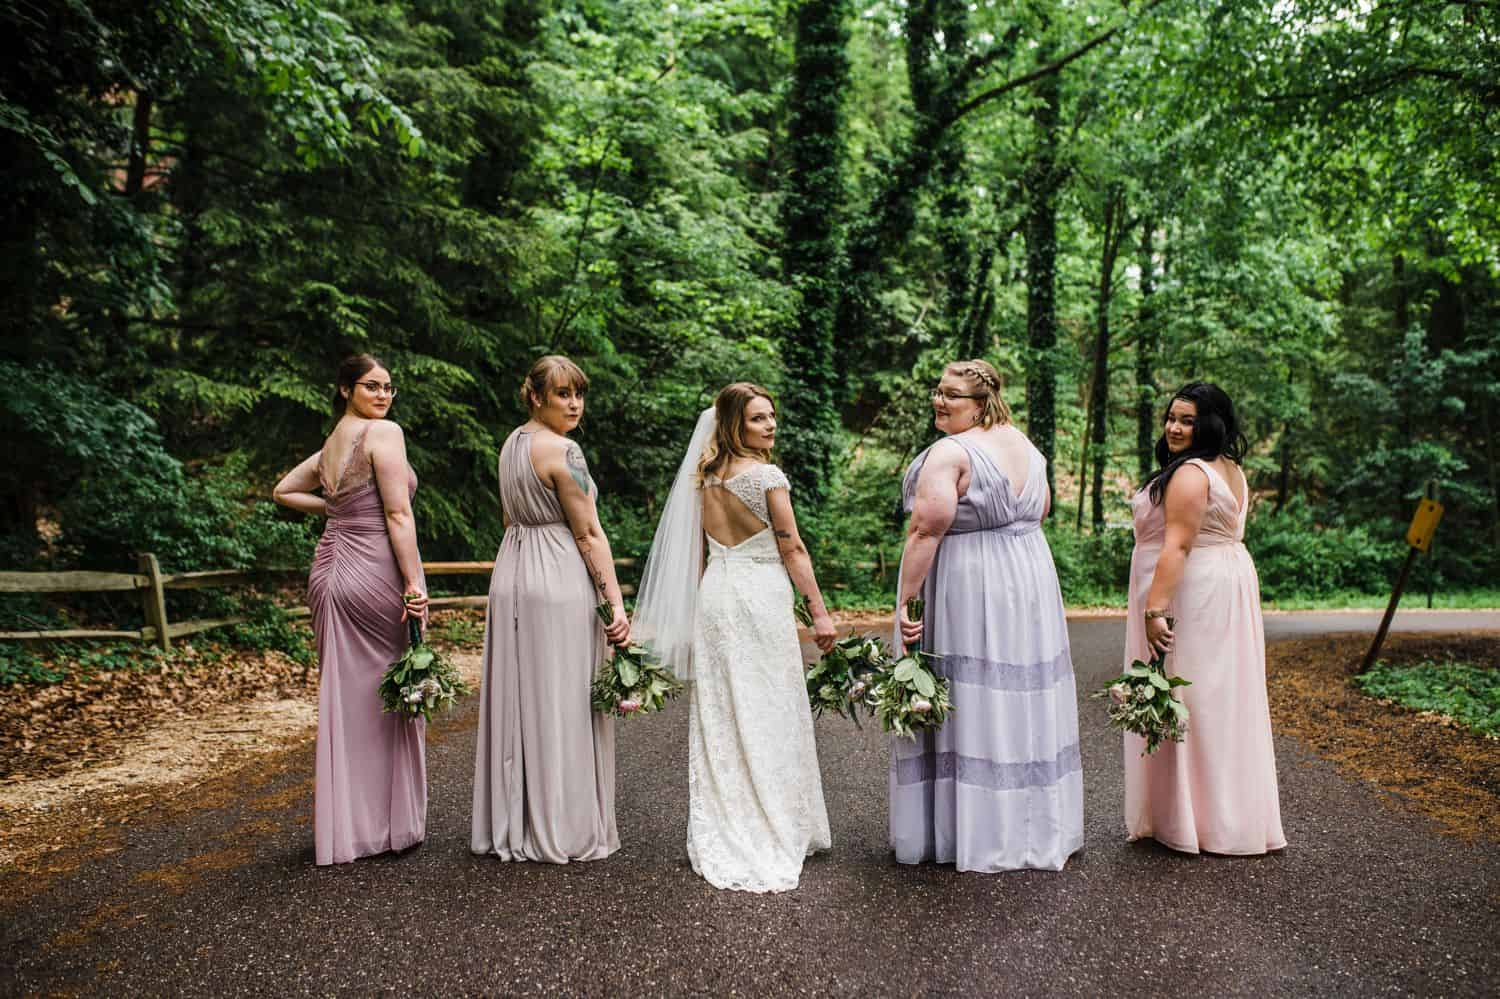 A bride and her bridesmaids post in the middle of a rural road and look over their shoulders.